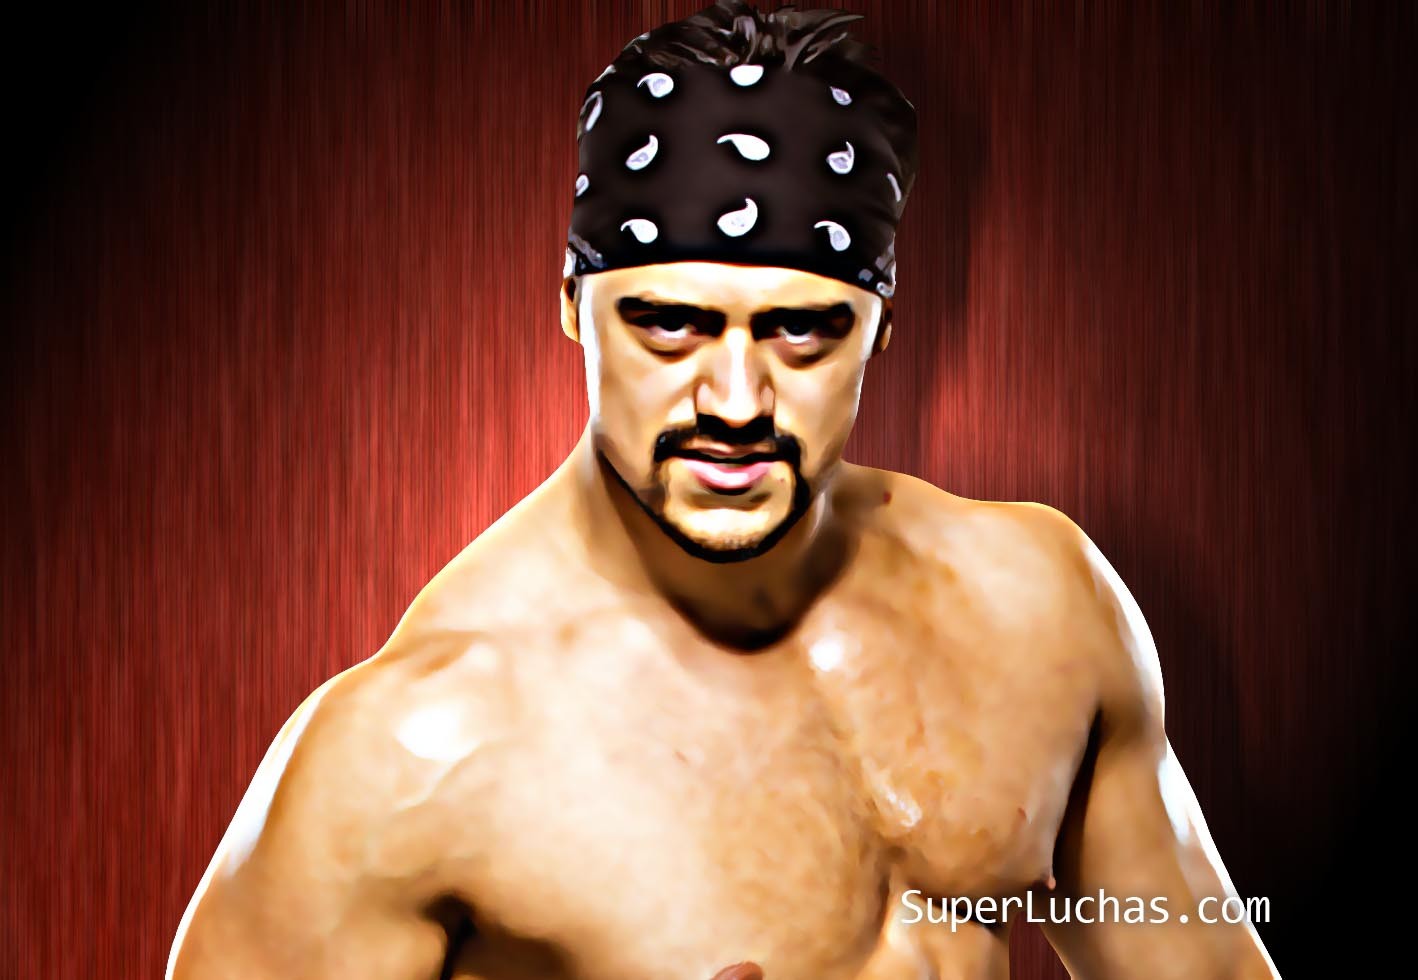 Garza Jr. / SuperLuchas.com